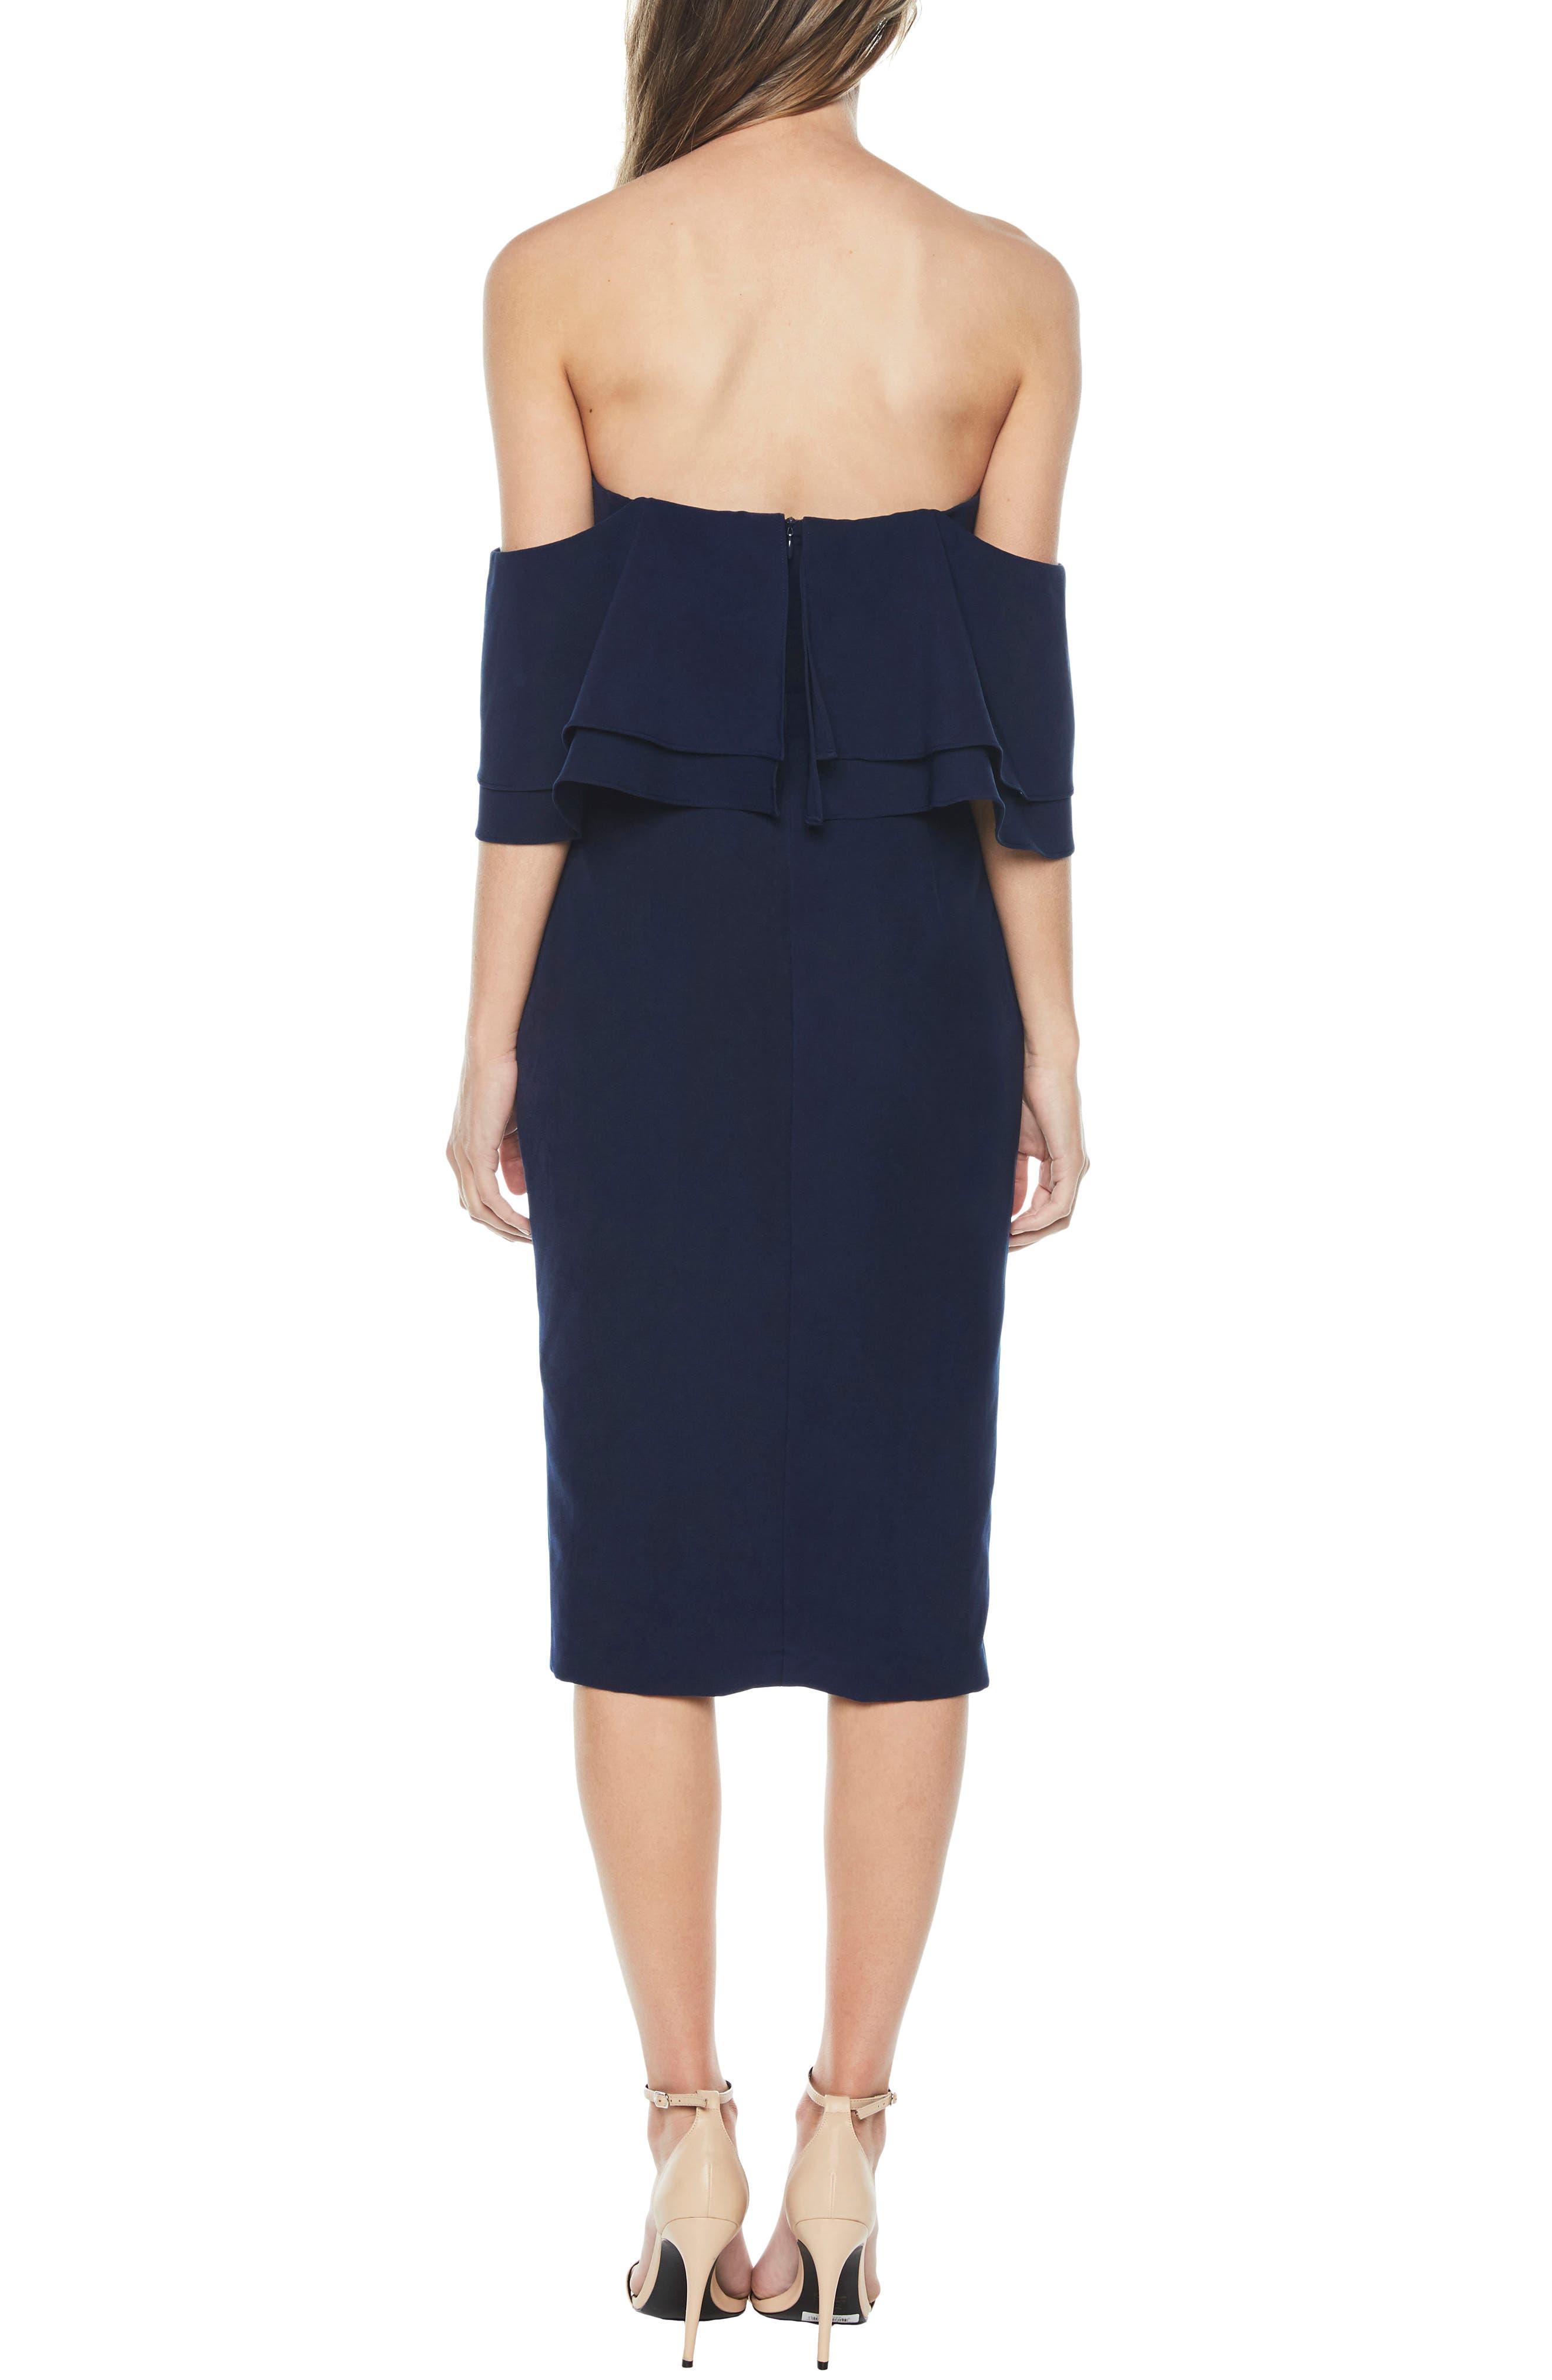 Band Ruffle Off the Shoulder Dress,                             Alternate thumbnail 3, color,                             Navy